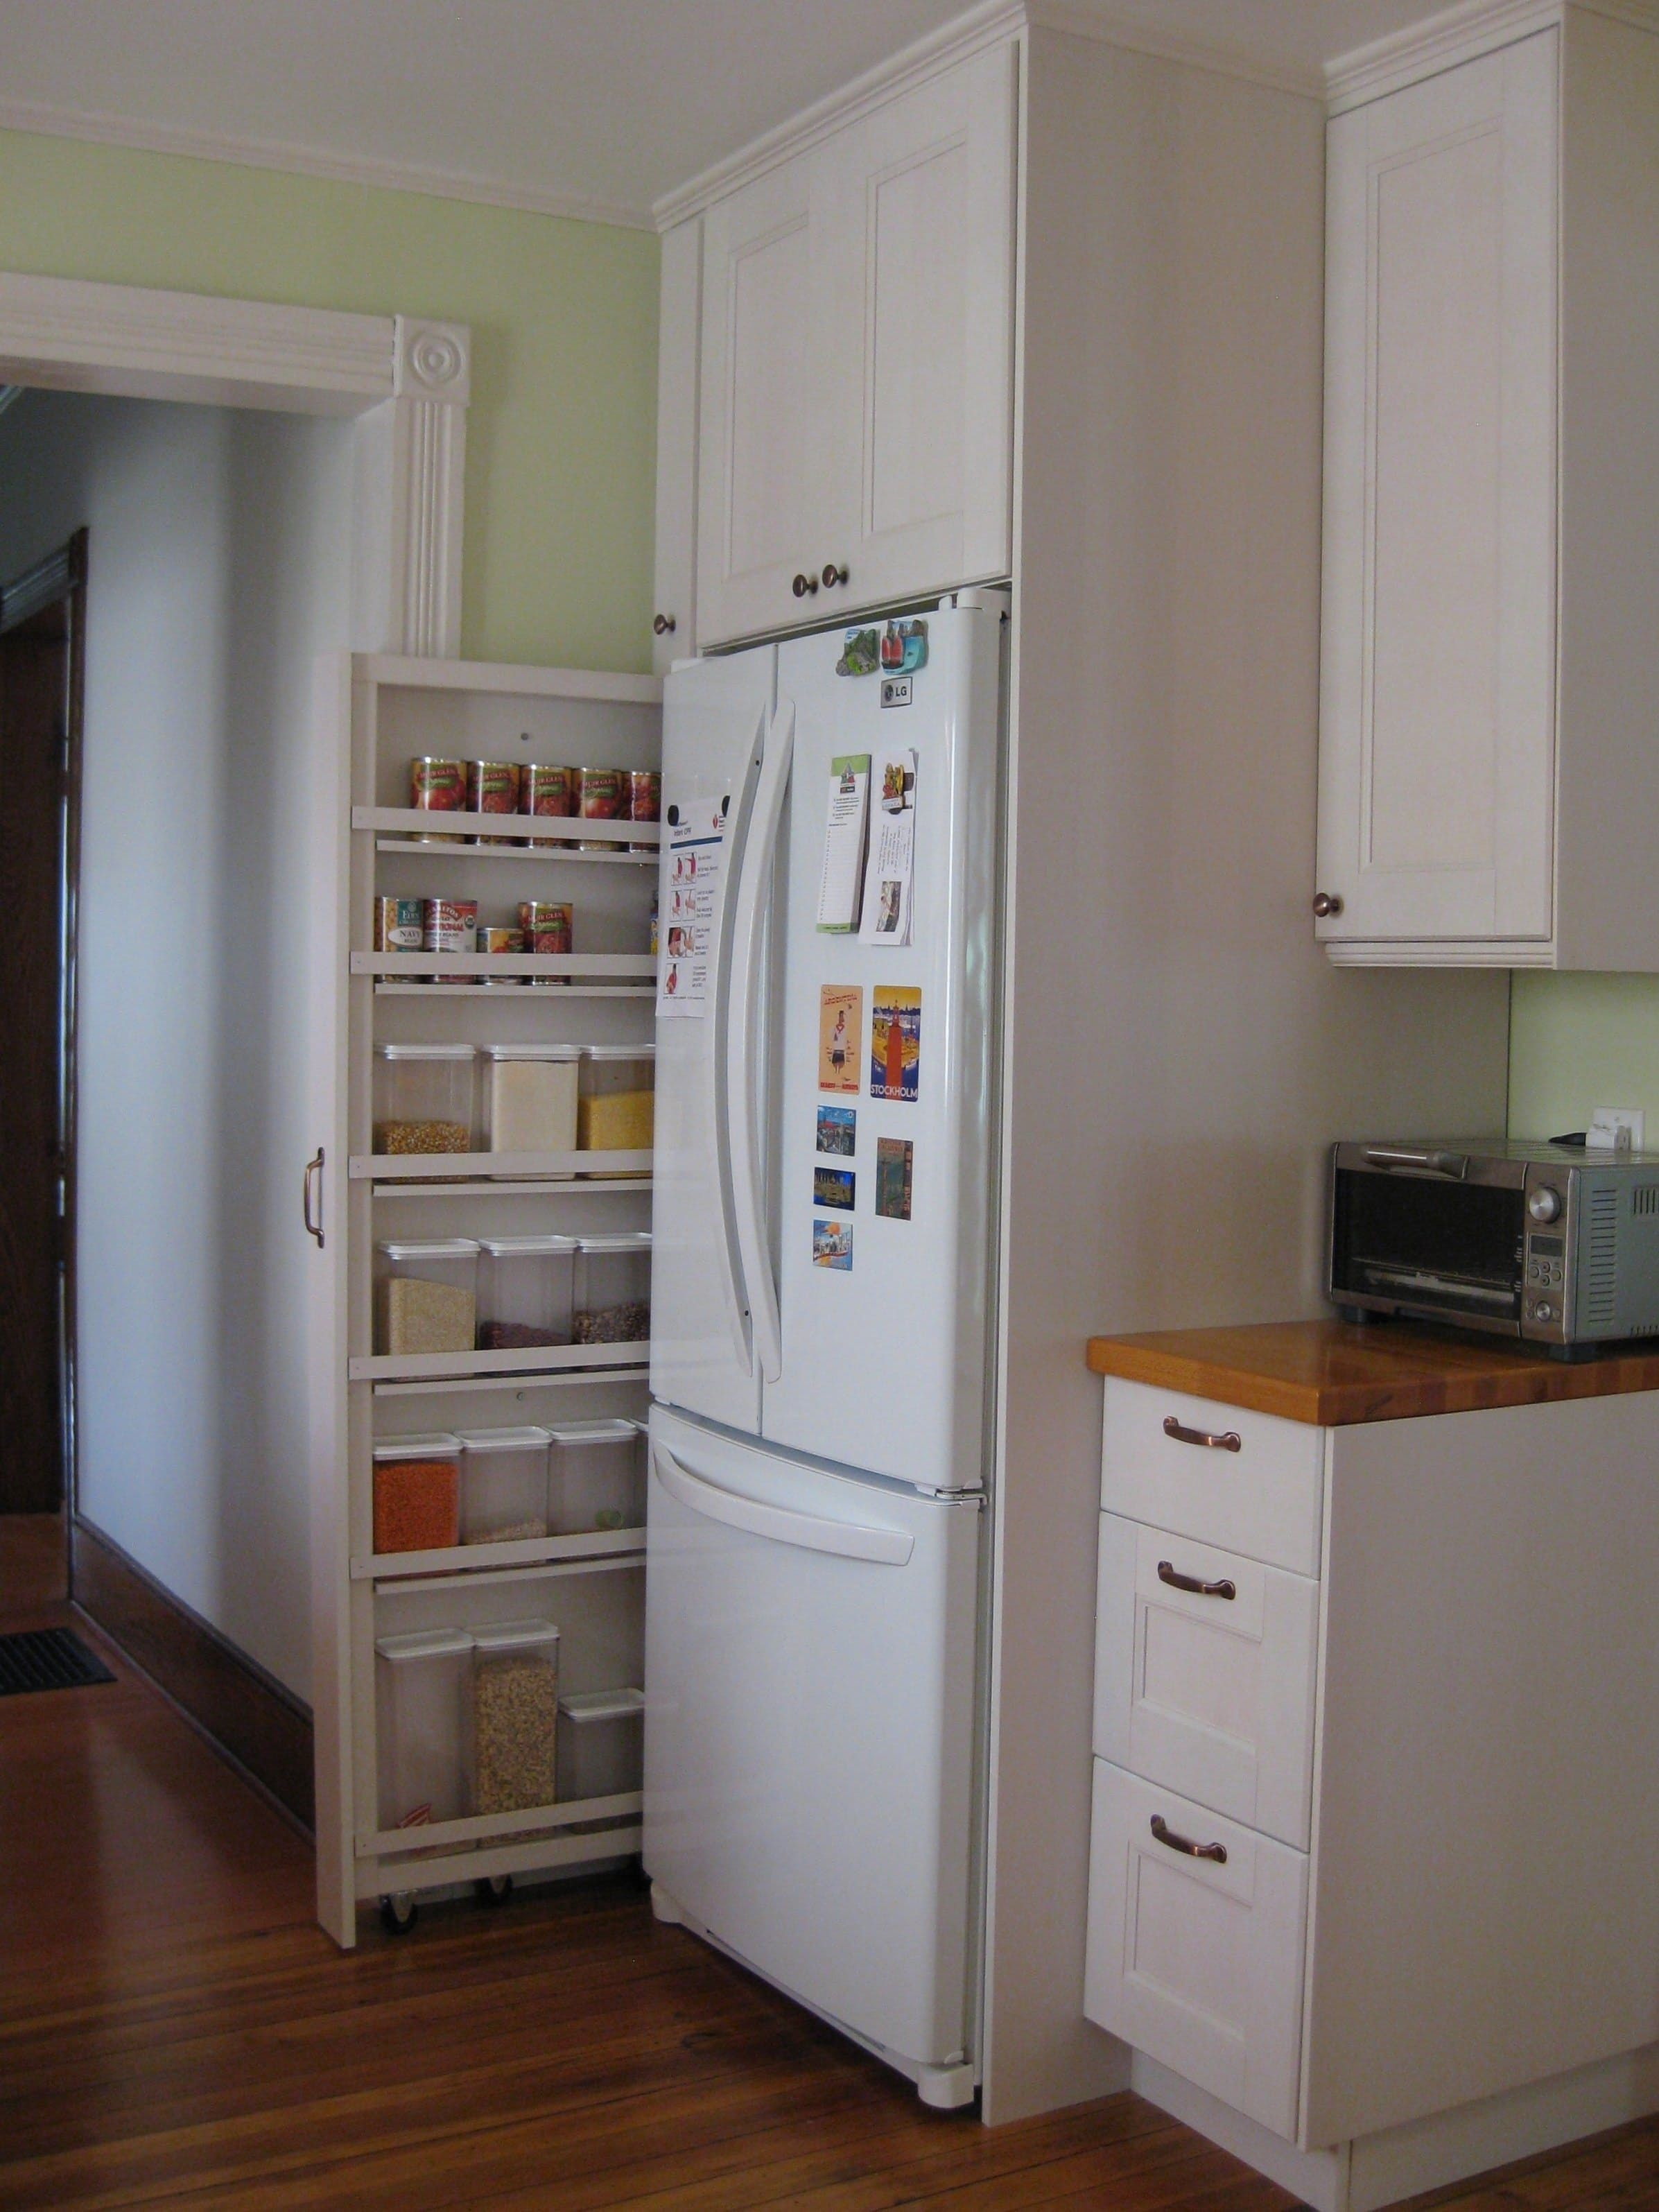 Delicieux Fridge Pantry Cabinet